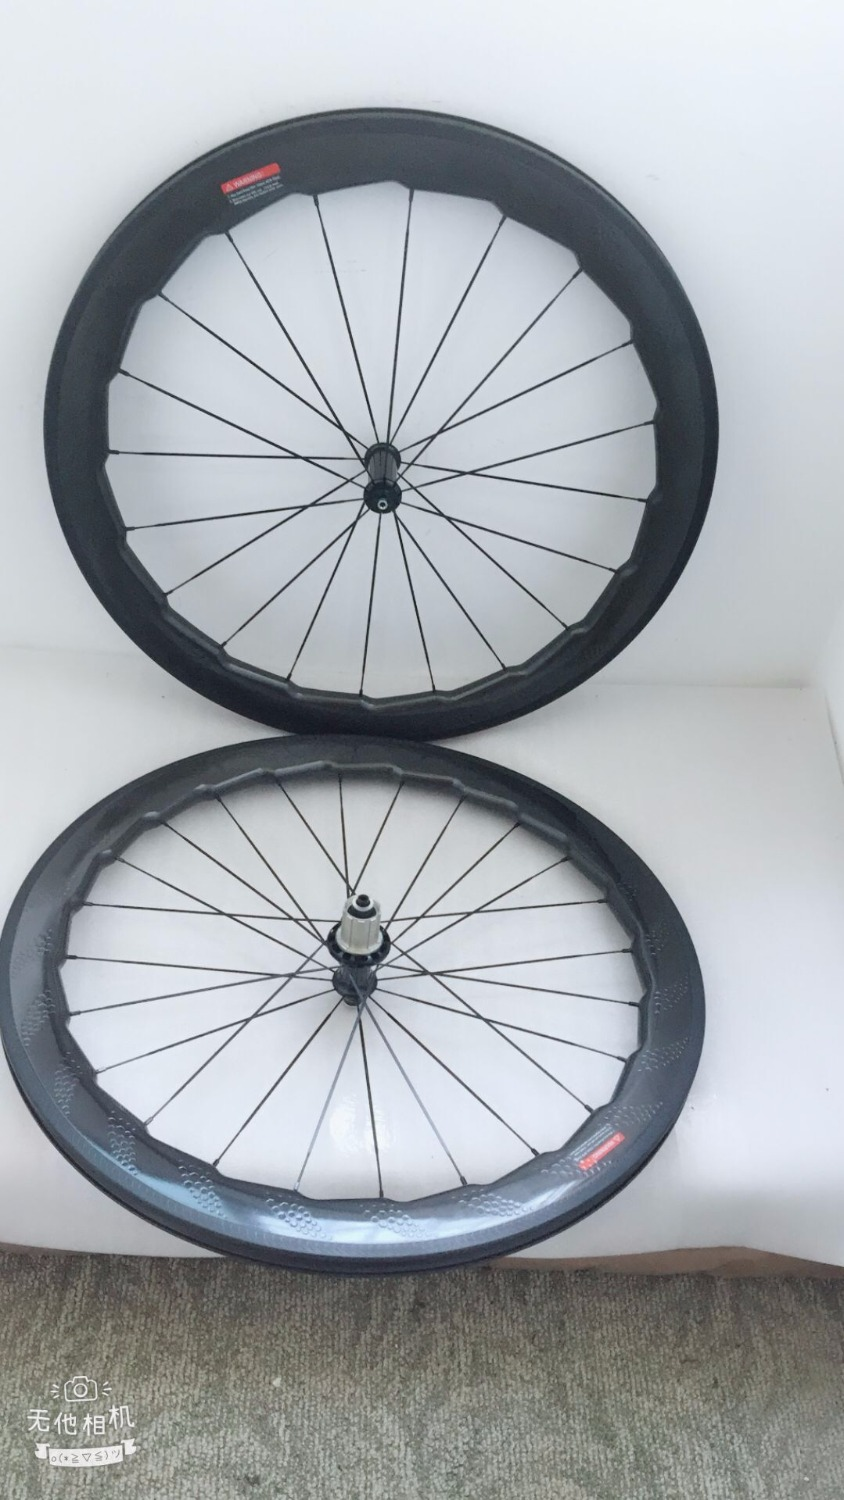 Newest bicycle carbon wheels  2018 style  58mm dimples surface V brakes 25mm width road bike wheels with ceramic bearing hubs mountain bike four perlin disc hubs 32 holes high quality lightweight flexible rotation bicycle hubs bzh002